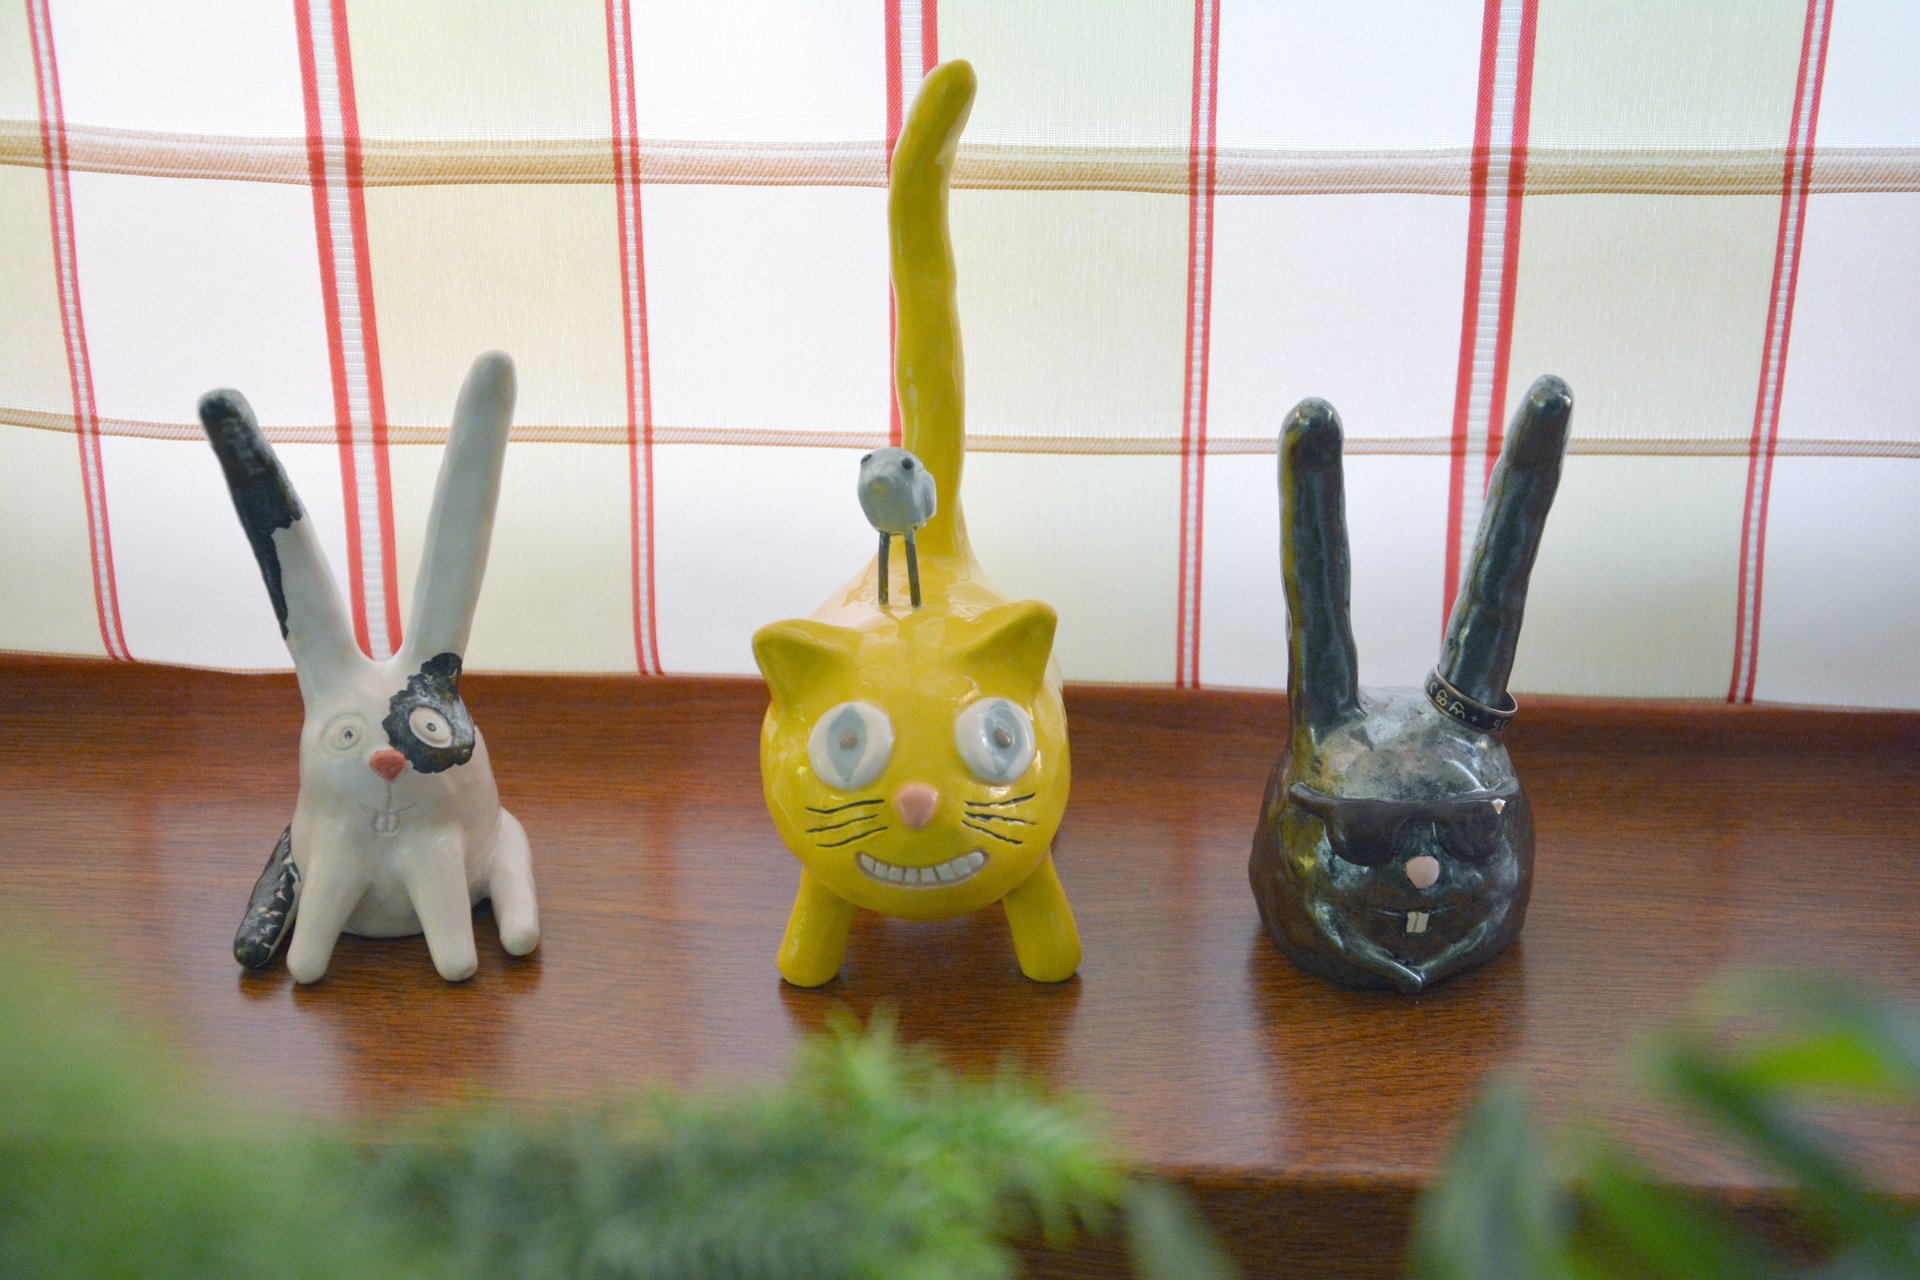 Cat «Cheshire smile» - Ceramic ring's holders, height - 15 cm., photo 3 of 3.